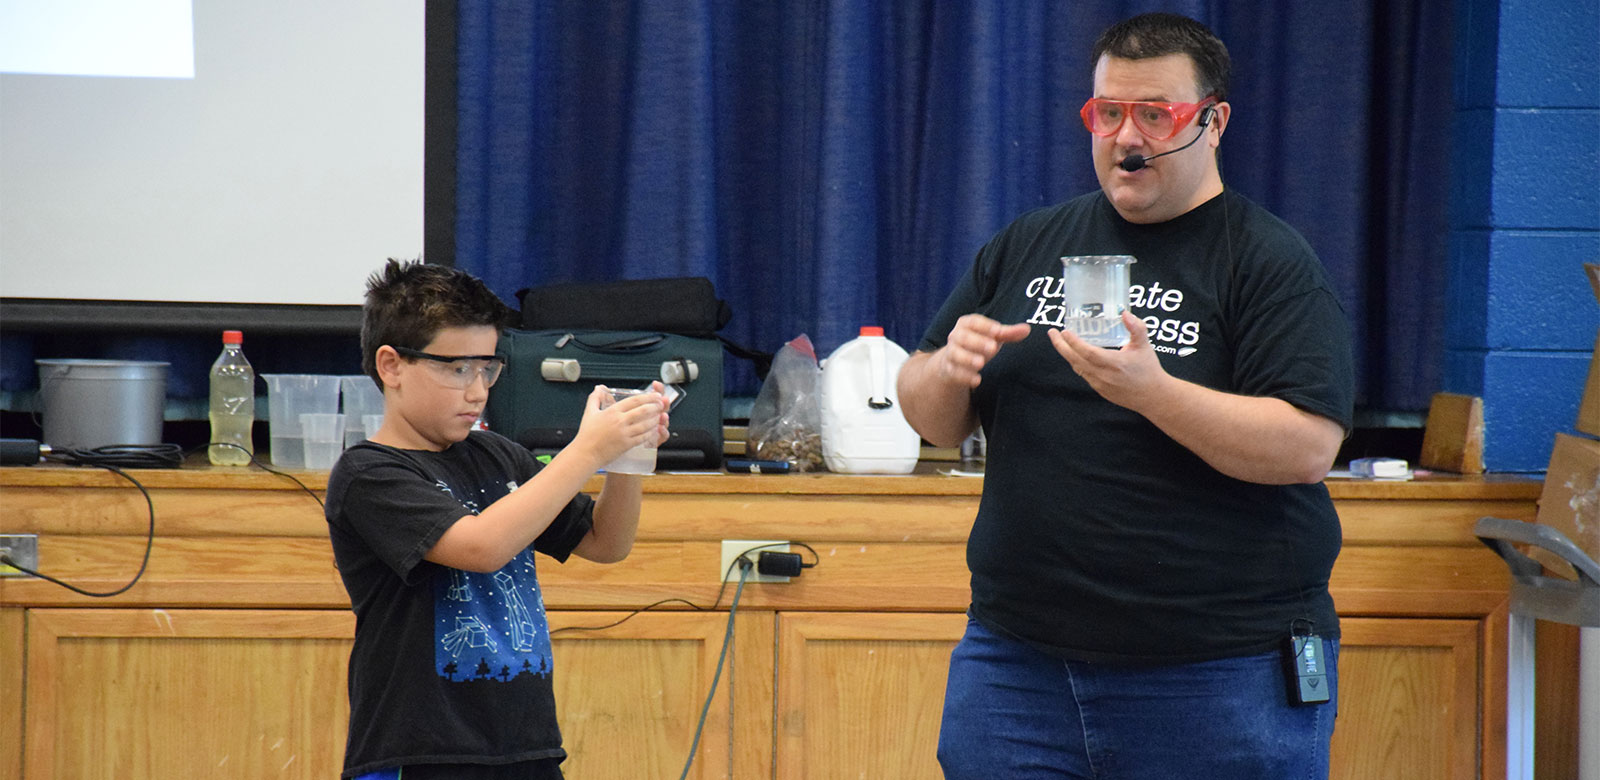 Hiawatha Students Cultivate Kindness